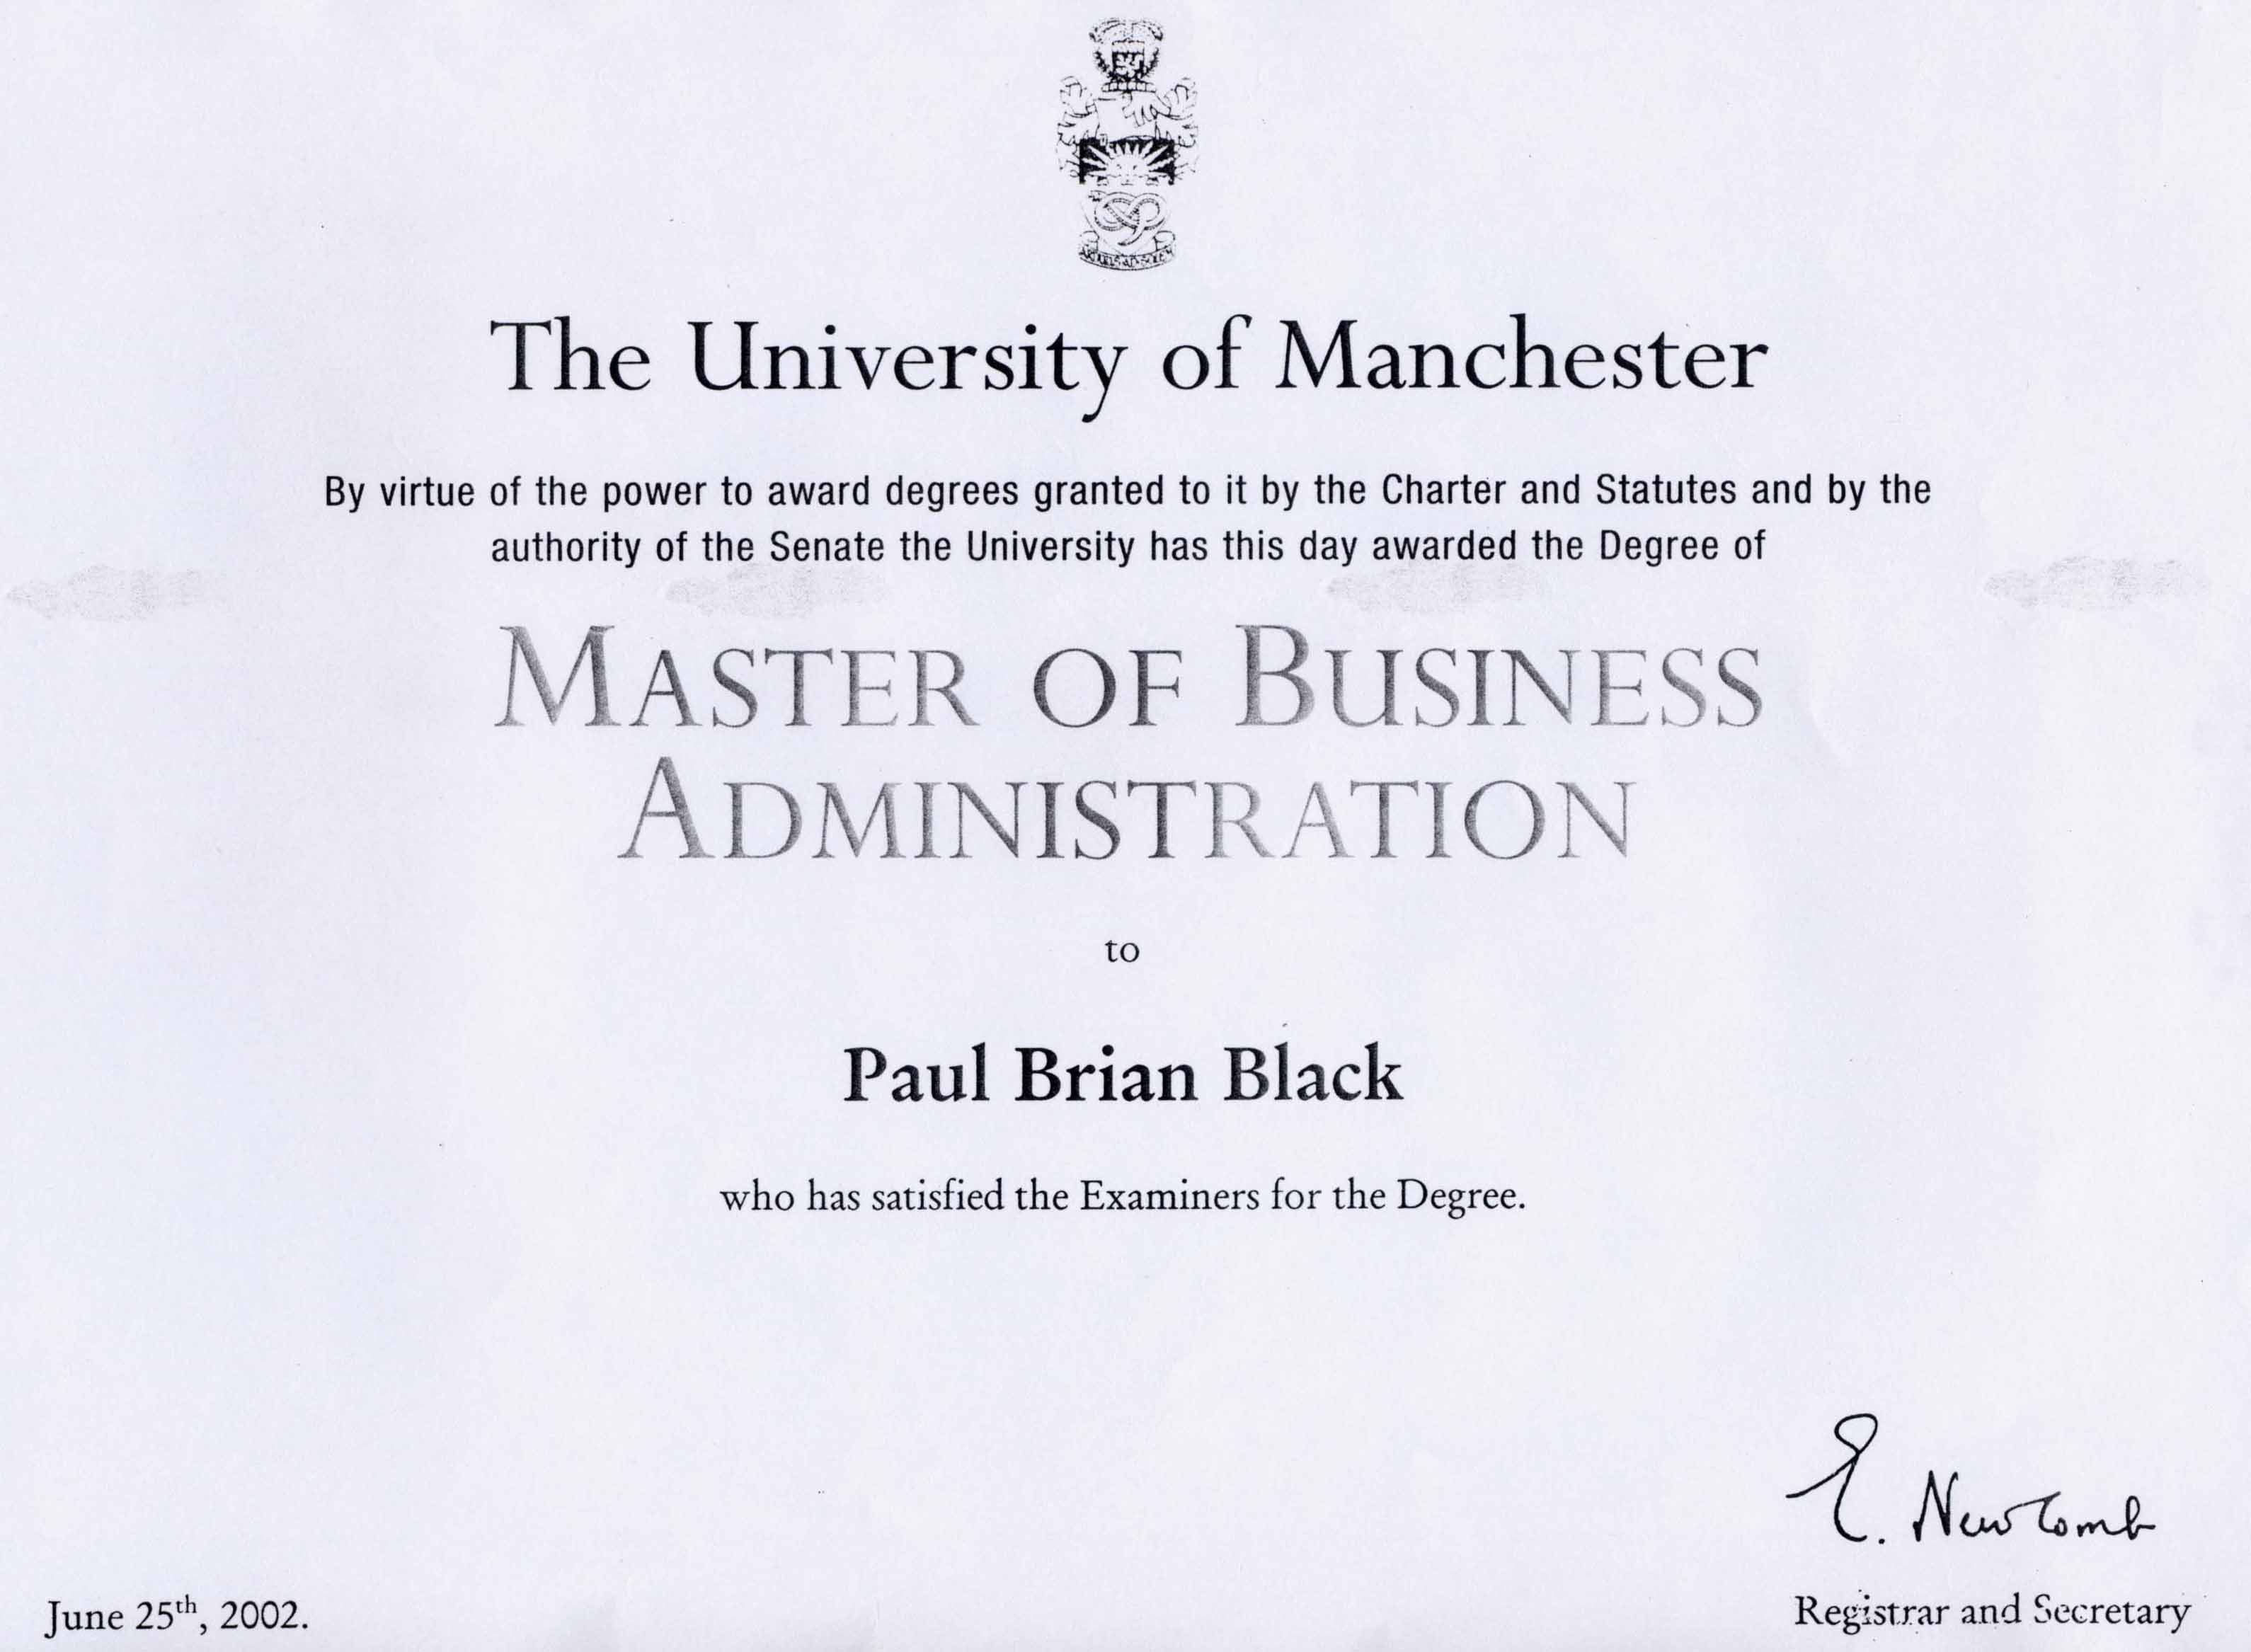 paul black >chartered shipbroker fics distinctions and awards in professional examinations